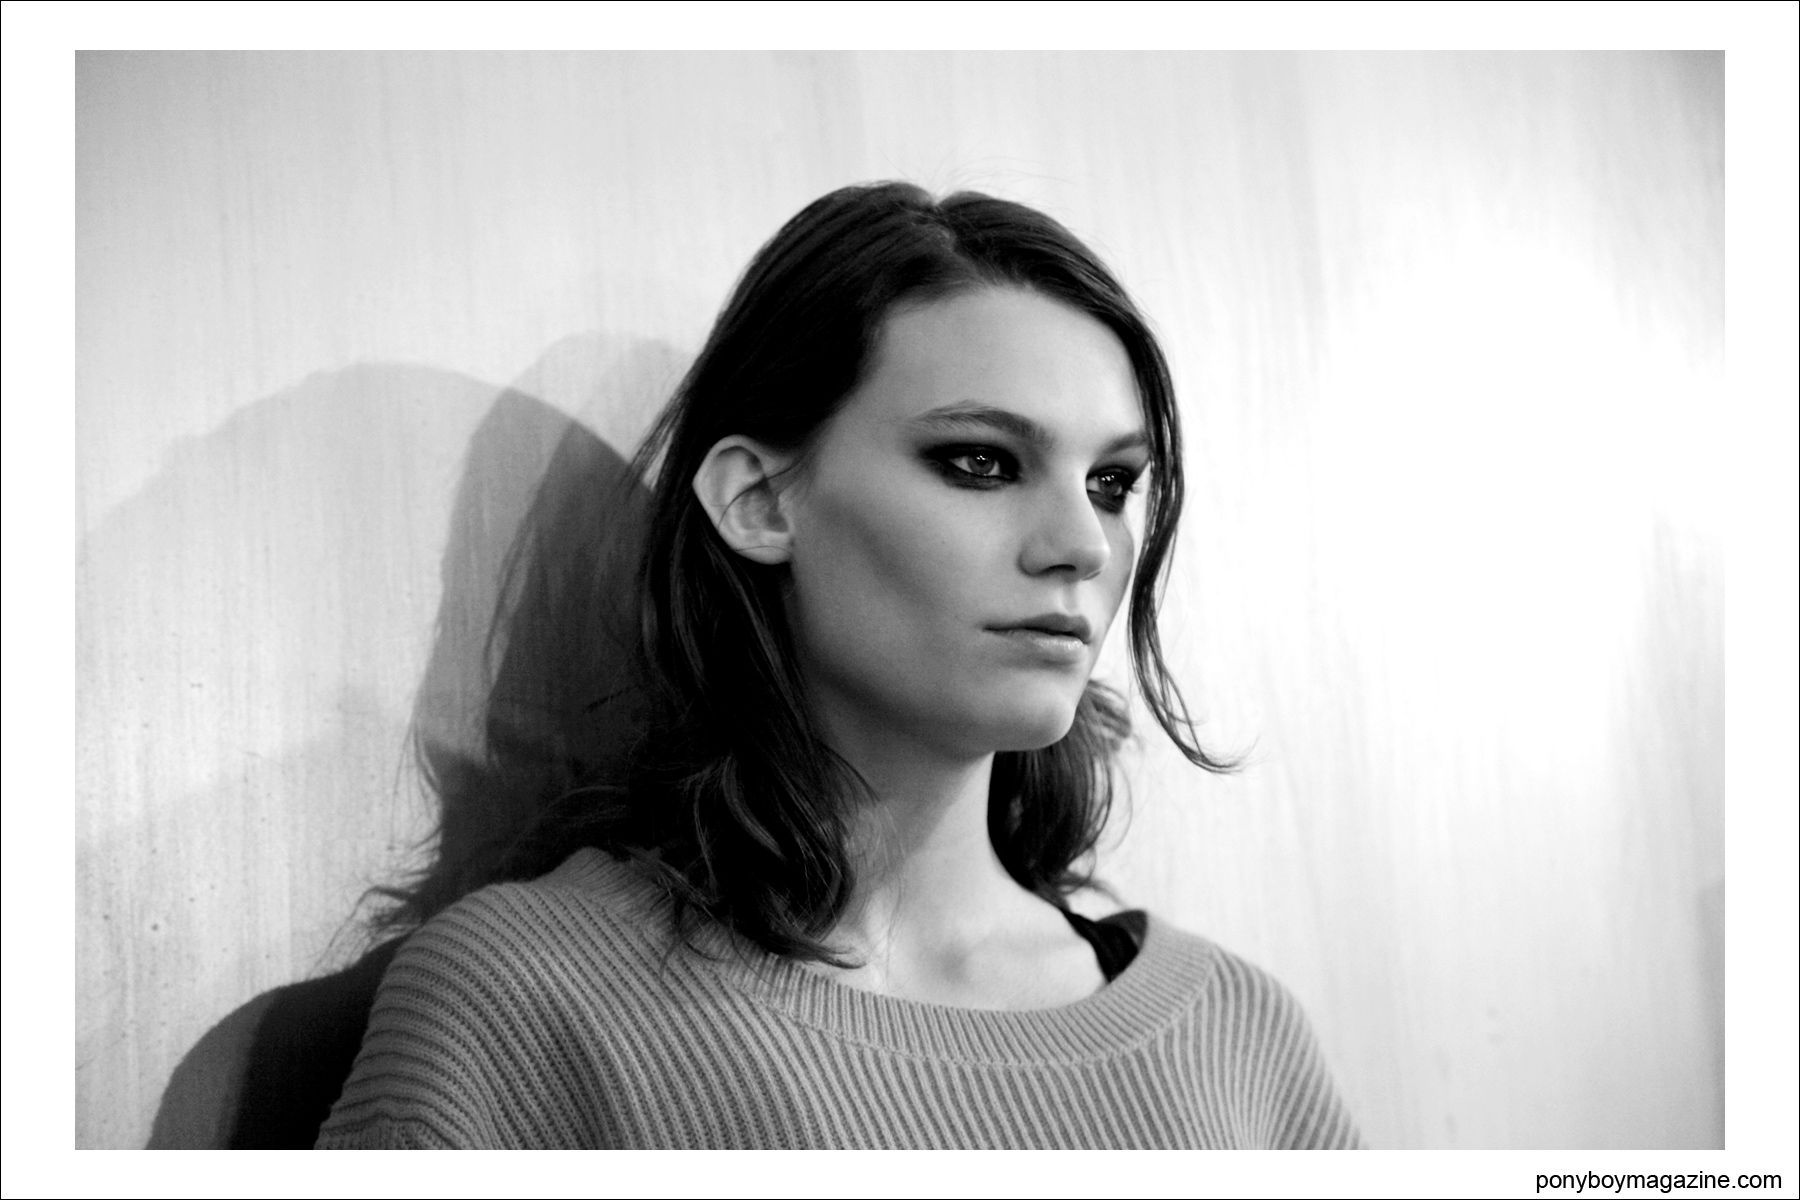 B&W portrait by photographer Alexander Thompson for Ponyboy Magazine, backstage at Sophie Theallet A/W 2014 collection.